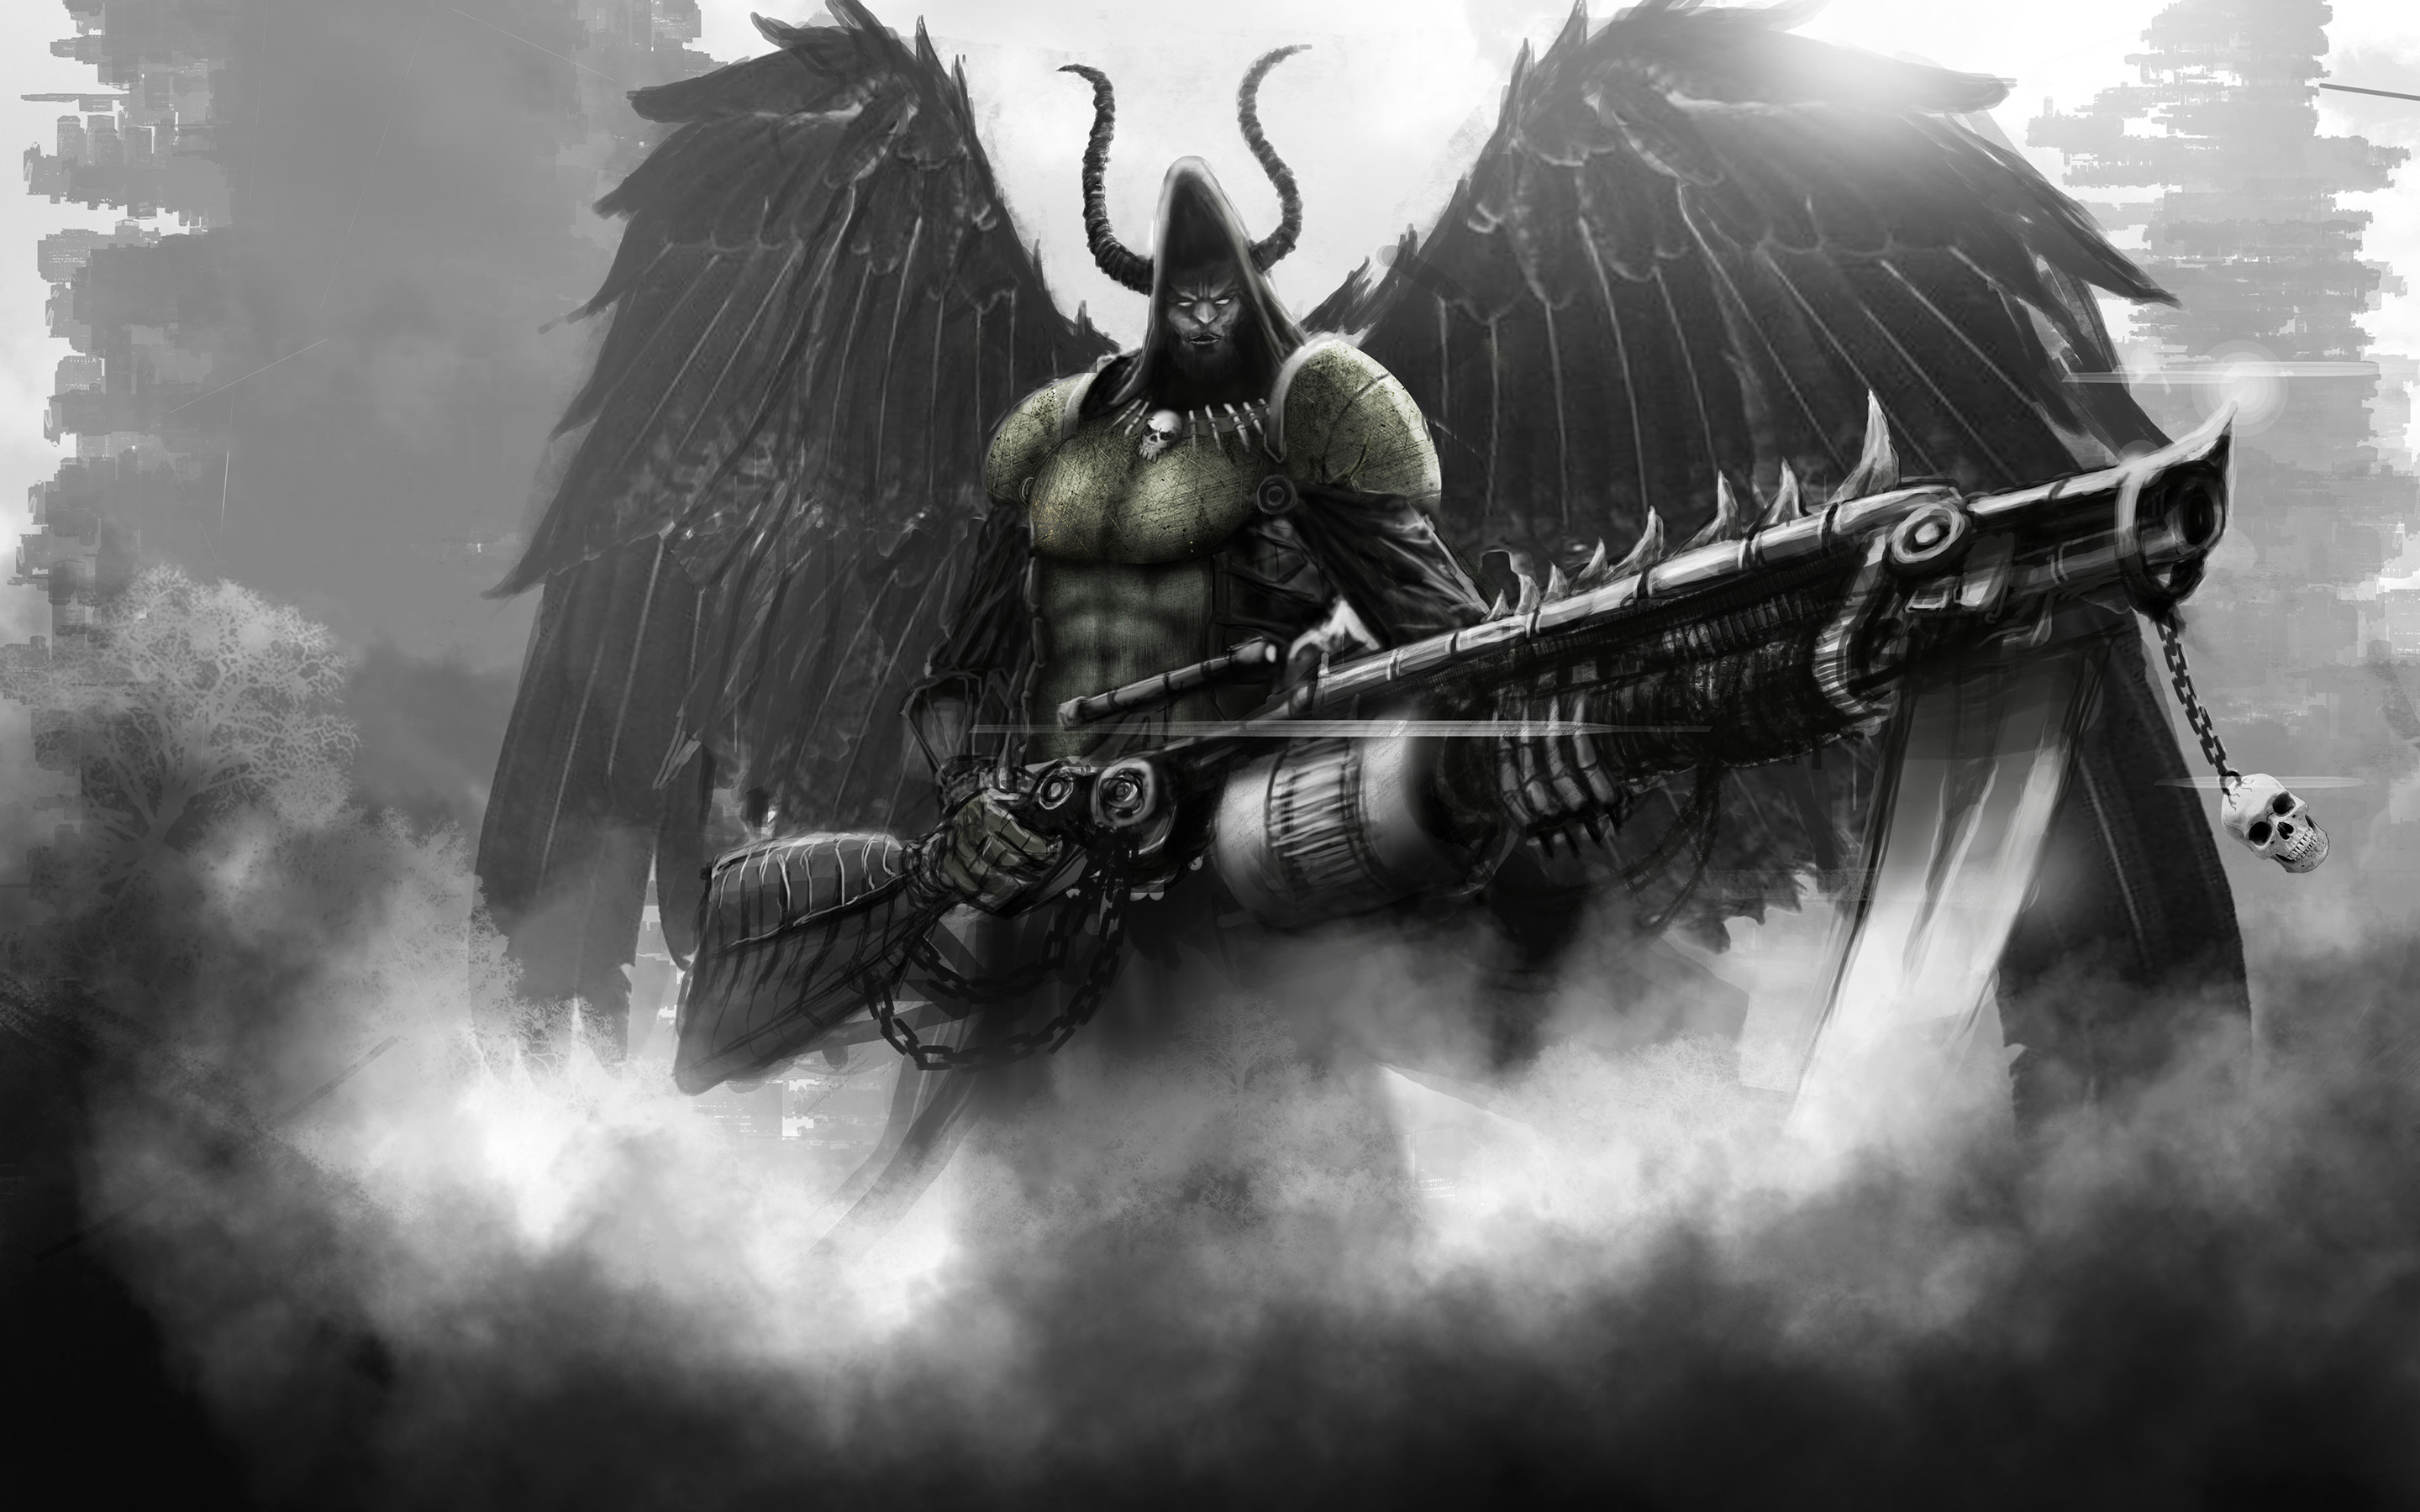 Angel Of Death Wallpaper FREE for Android Free Download on   HD Wallpapers    Pinterest   Death, Wallpaper free download and Wallpaper